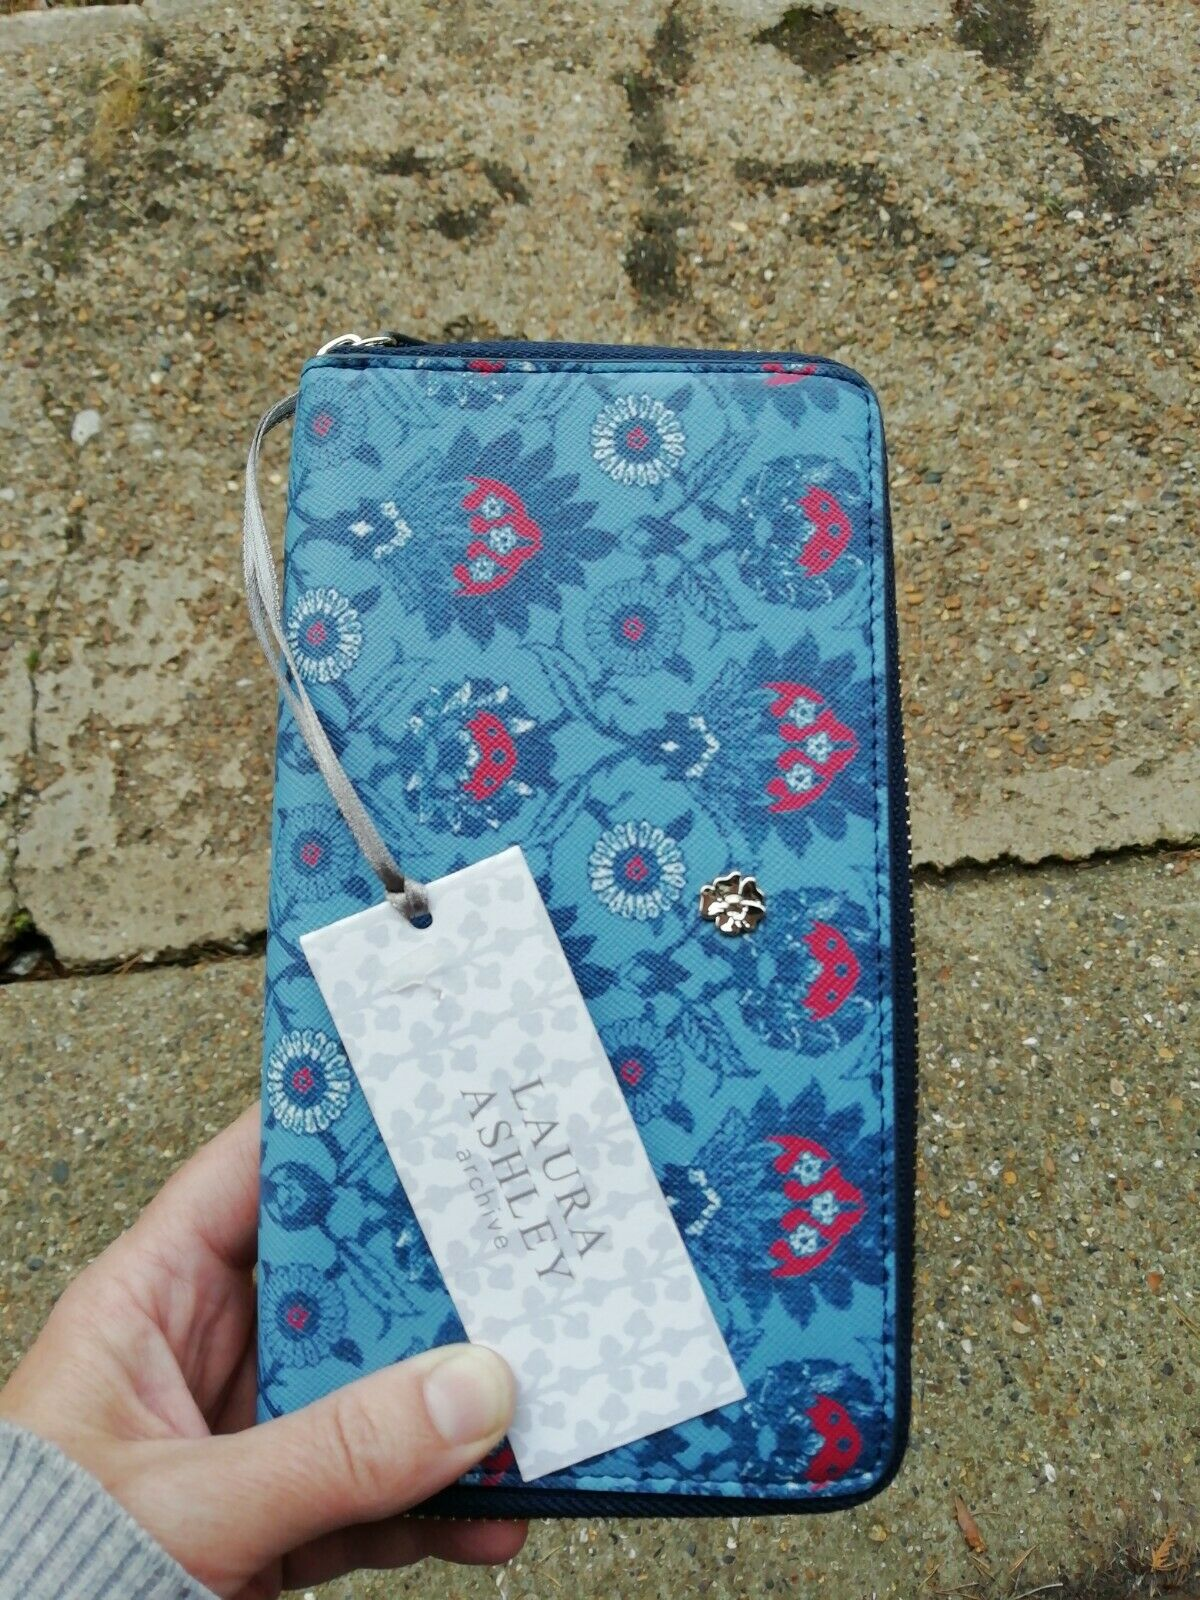 Laura Ashley Archive Blue Zip Wallet Purse Floral Print. Unused, Ideal Gift